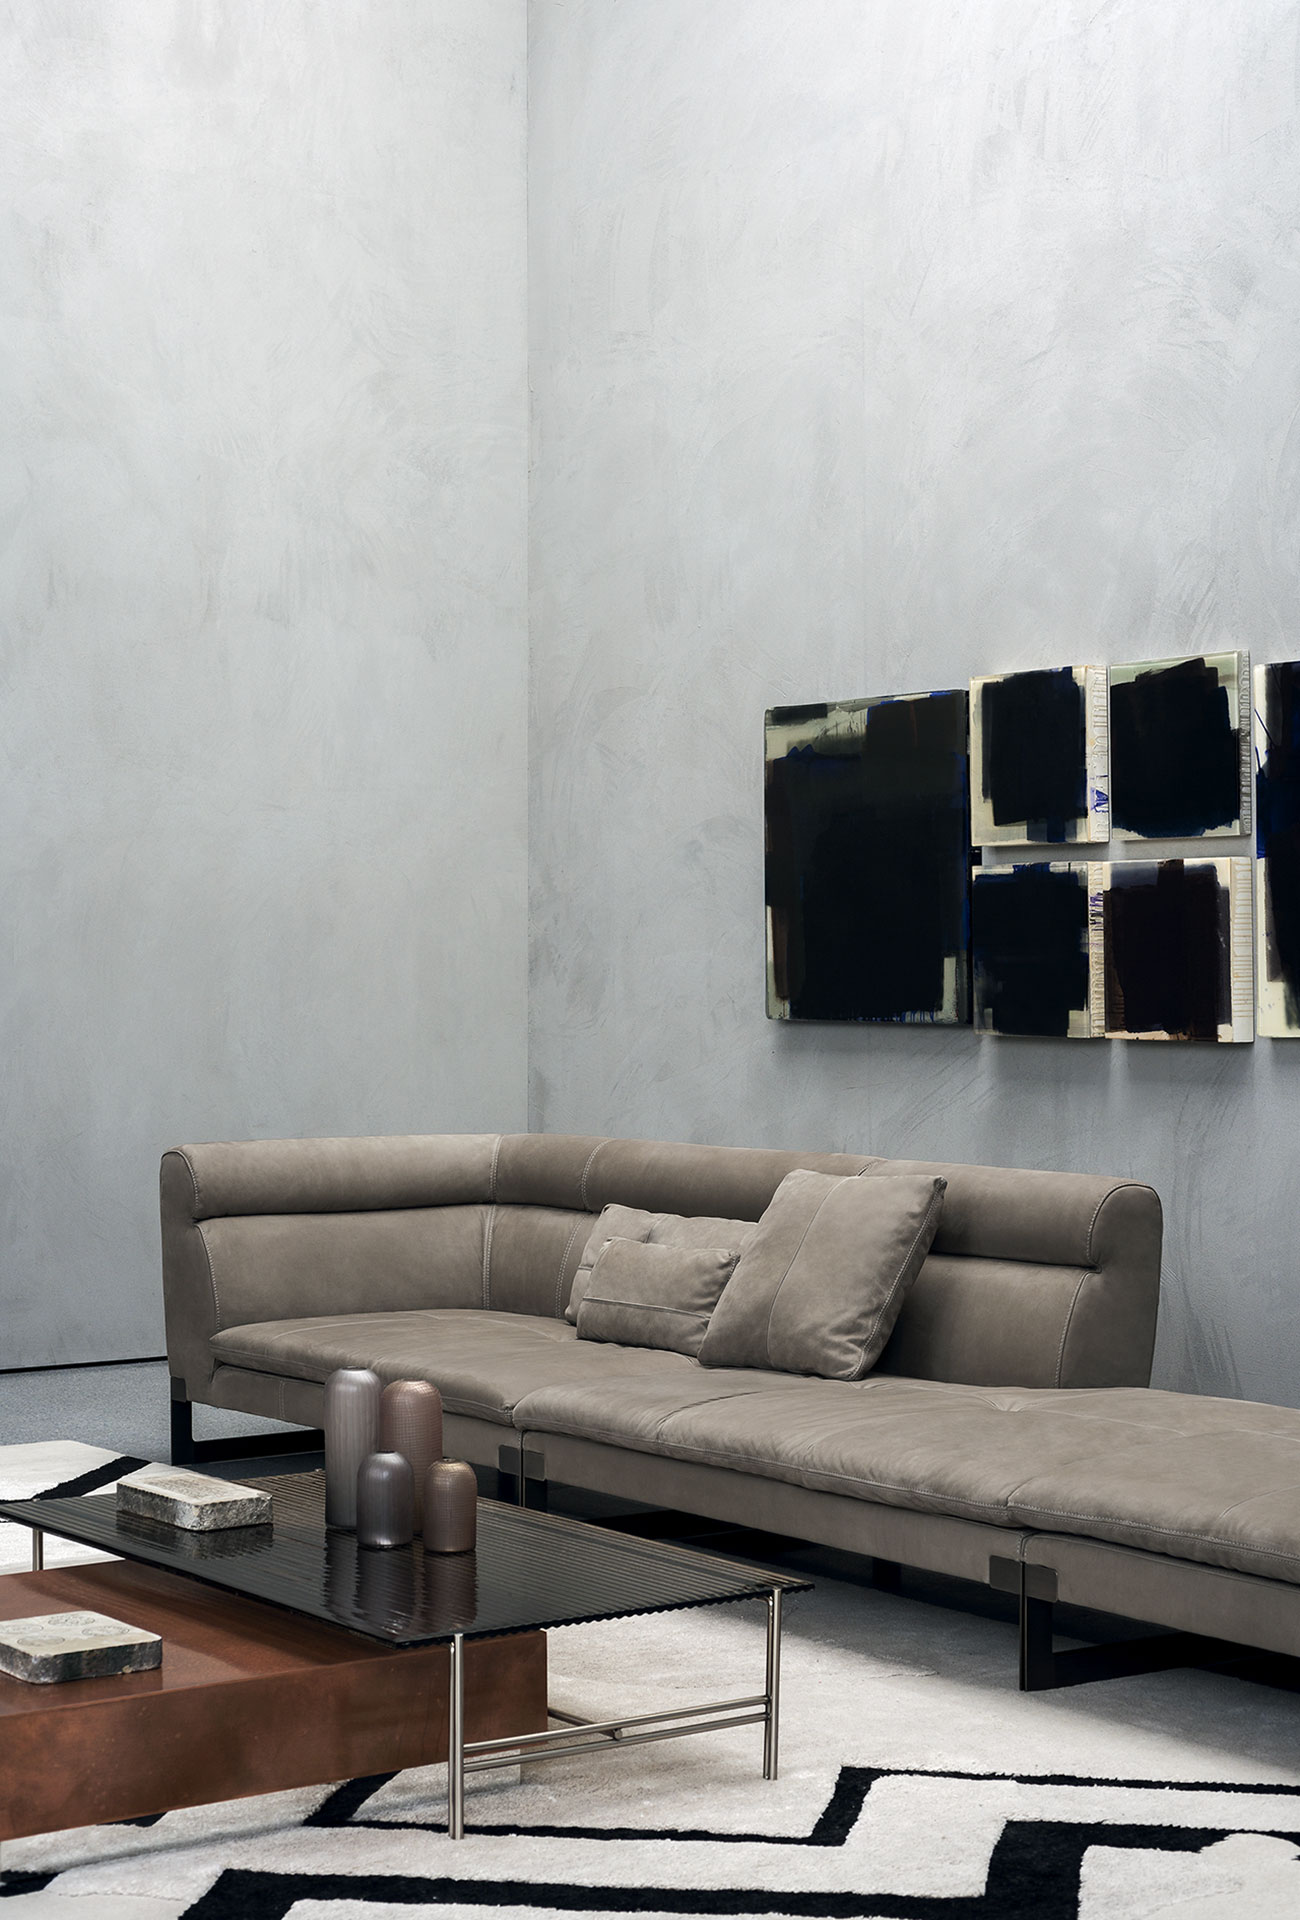 Full Size of Baxter Sofa Criteria Collection Furniture List Paola Navone Couch Ez Living Jonathan Adler Chester Moon Cena Tactile Viktor Leather Hussen Für Chesterfield Sofa Baxter Sofa